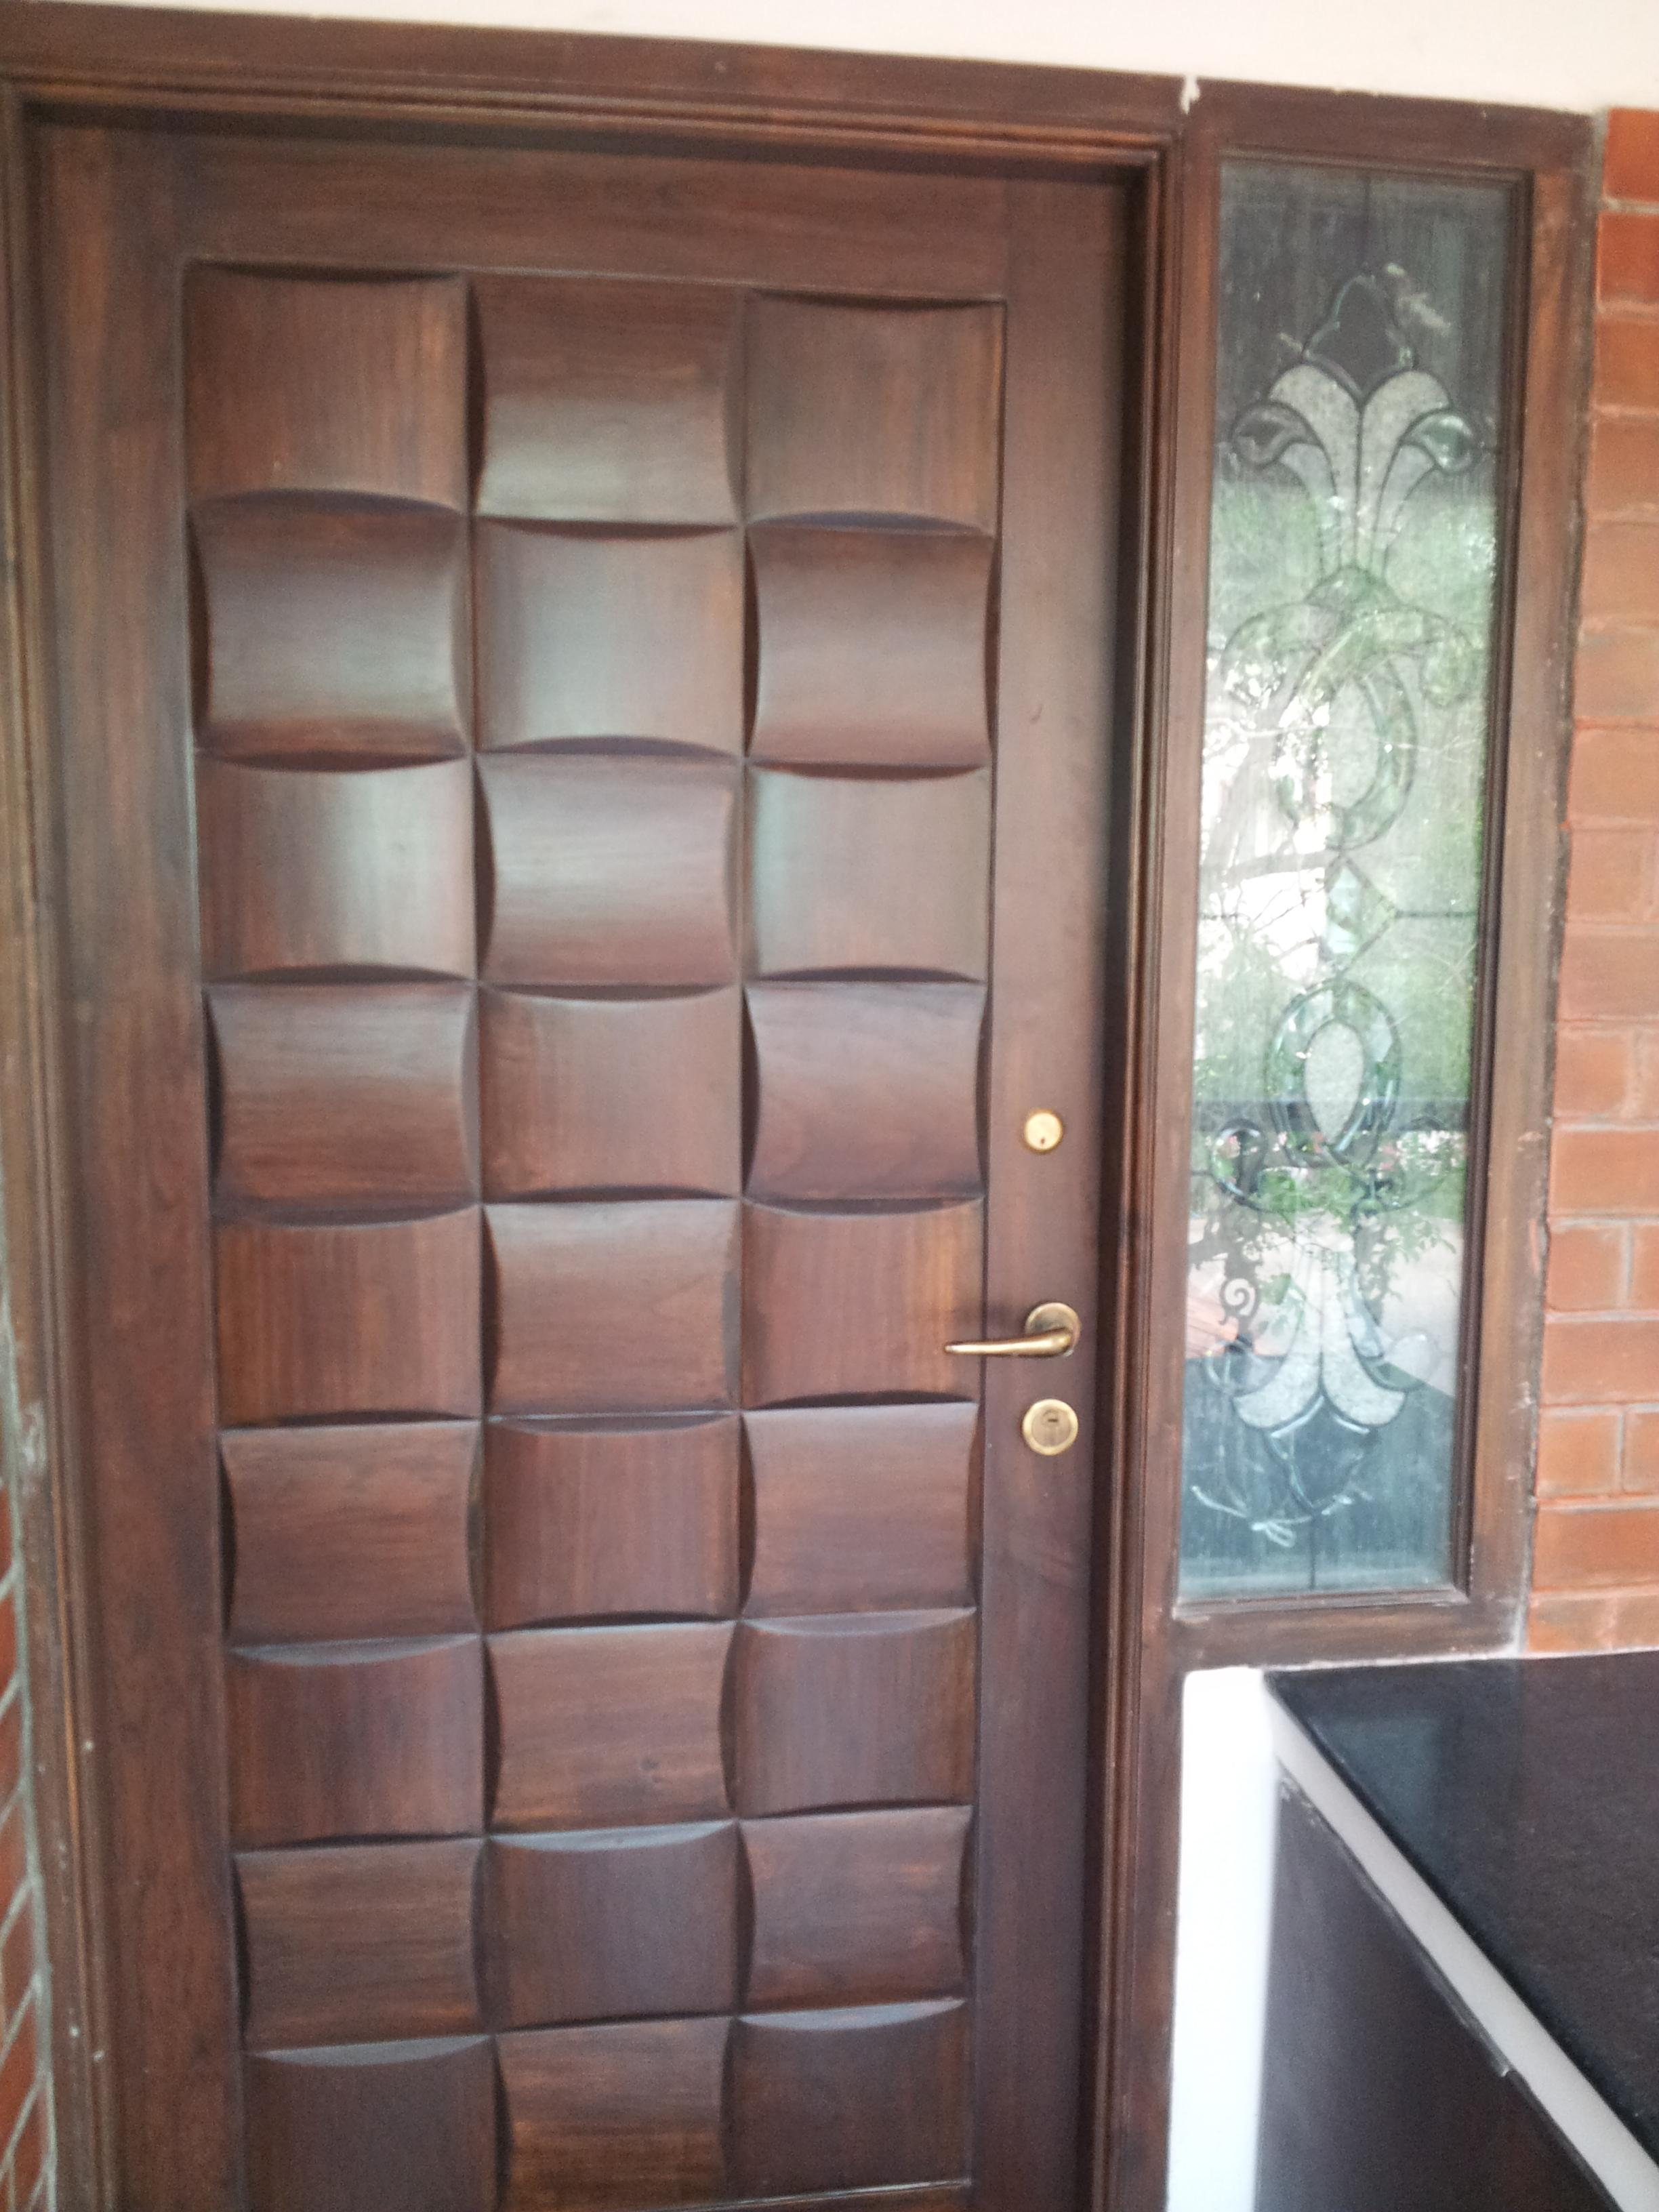 Main door design in wood very popular in 2013 gharexpert for Main door design